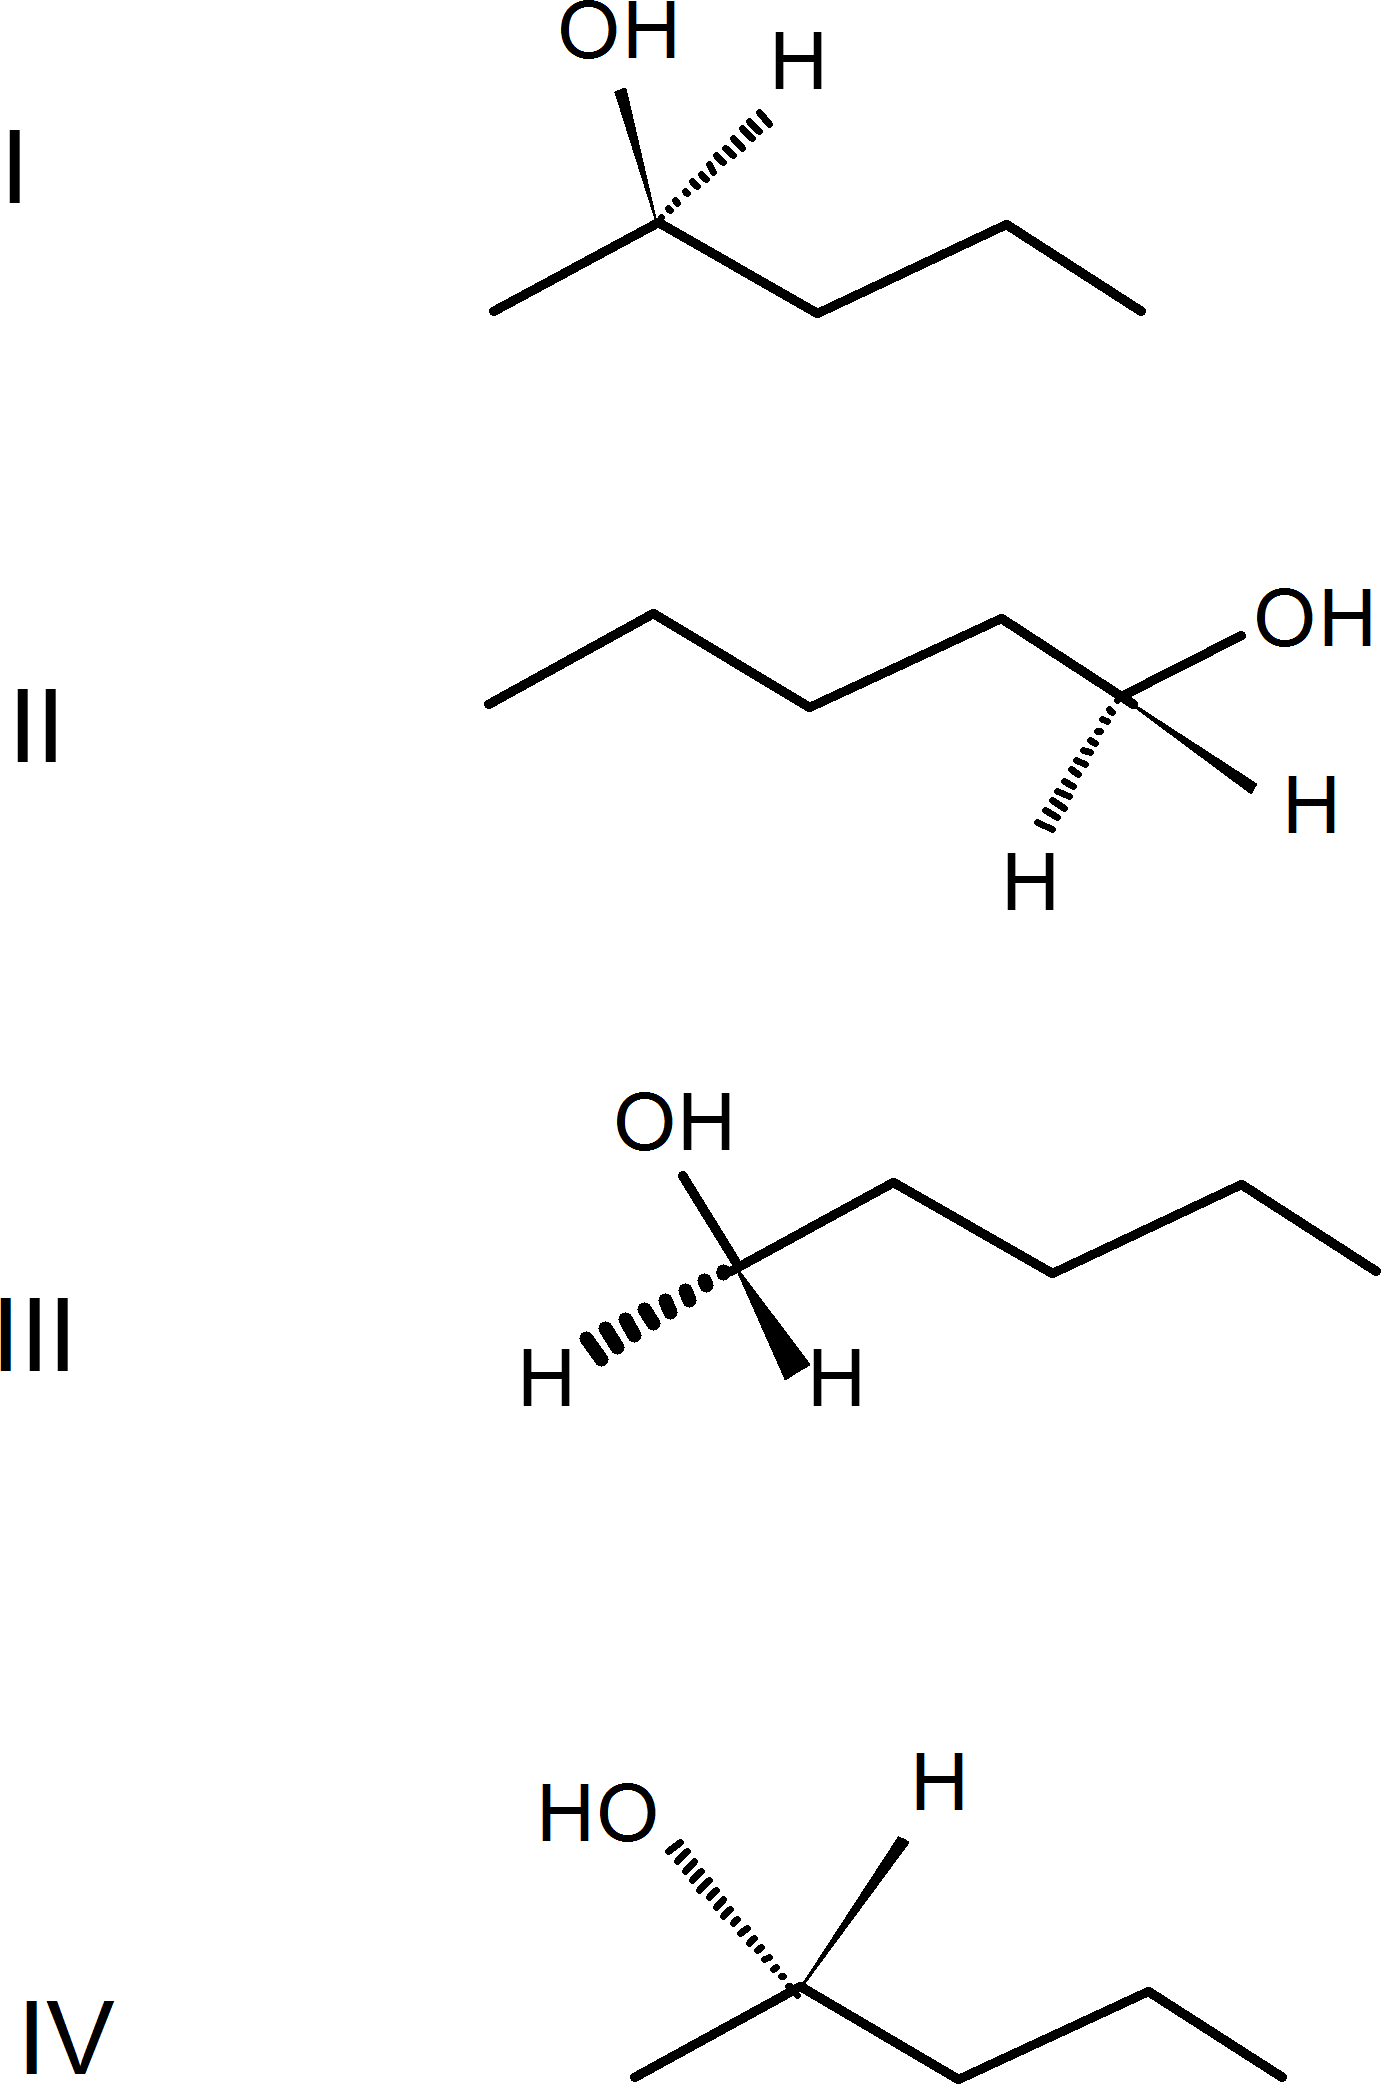 Enantiomeric pair among the following four structures